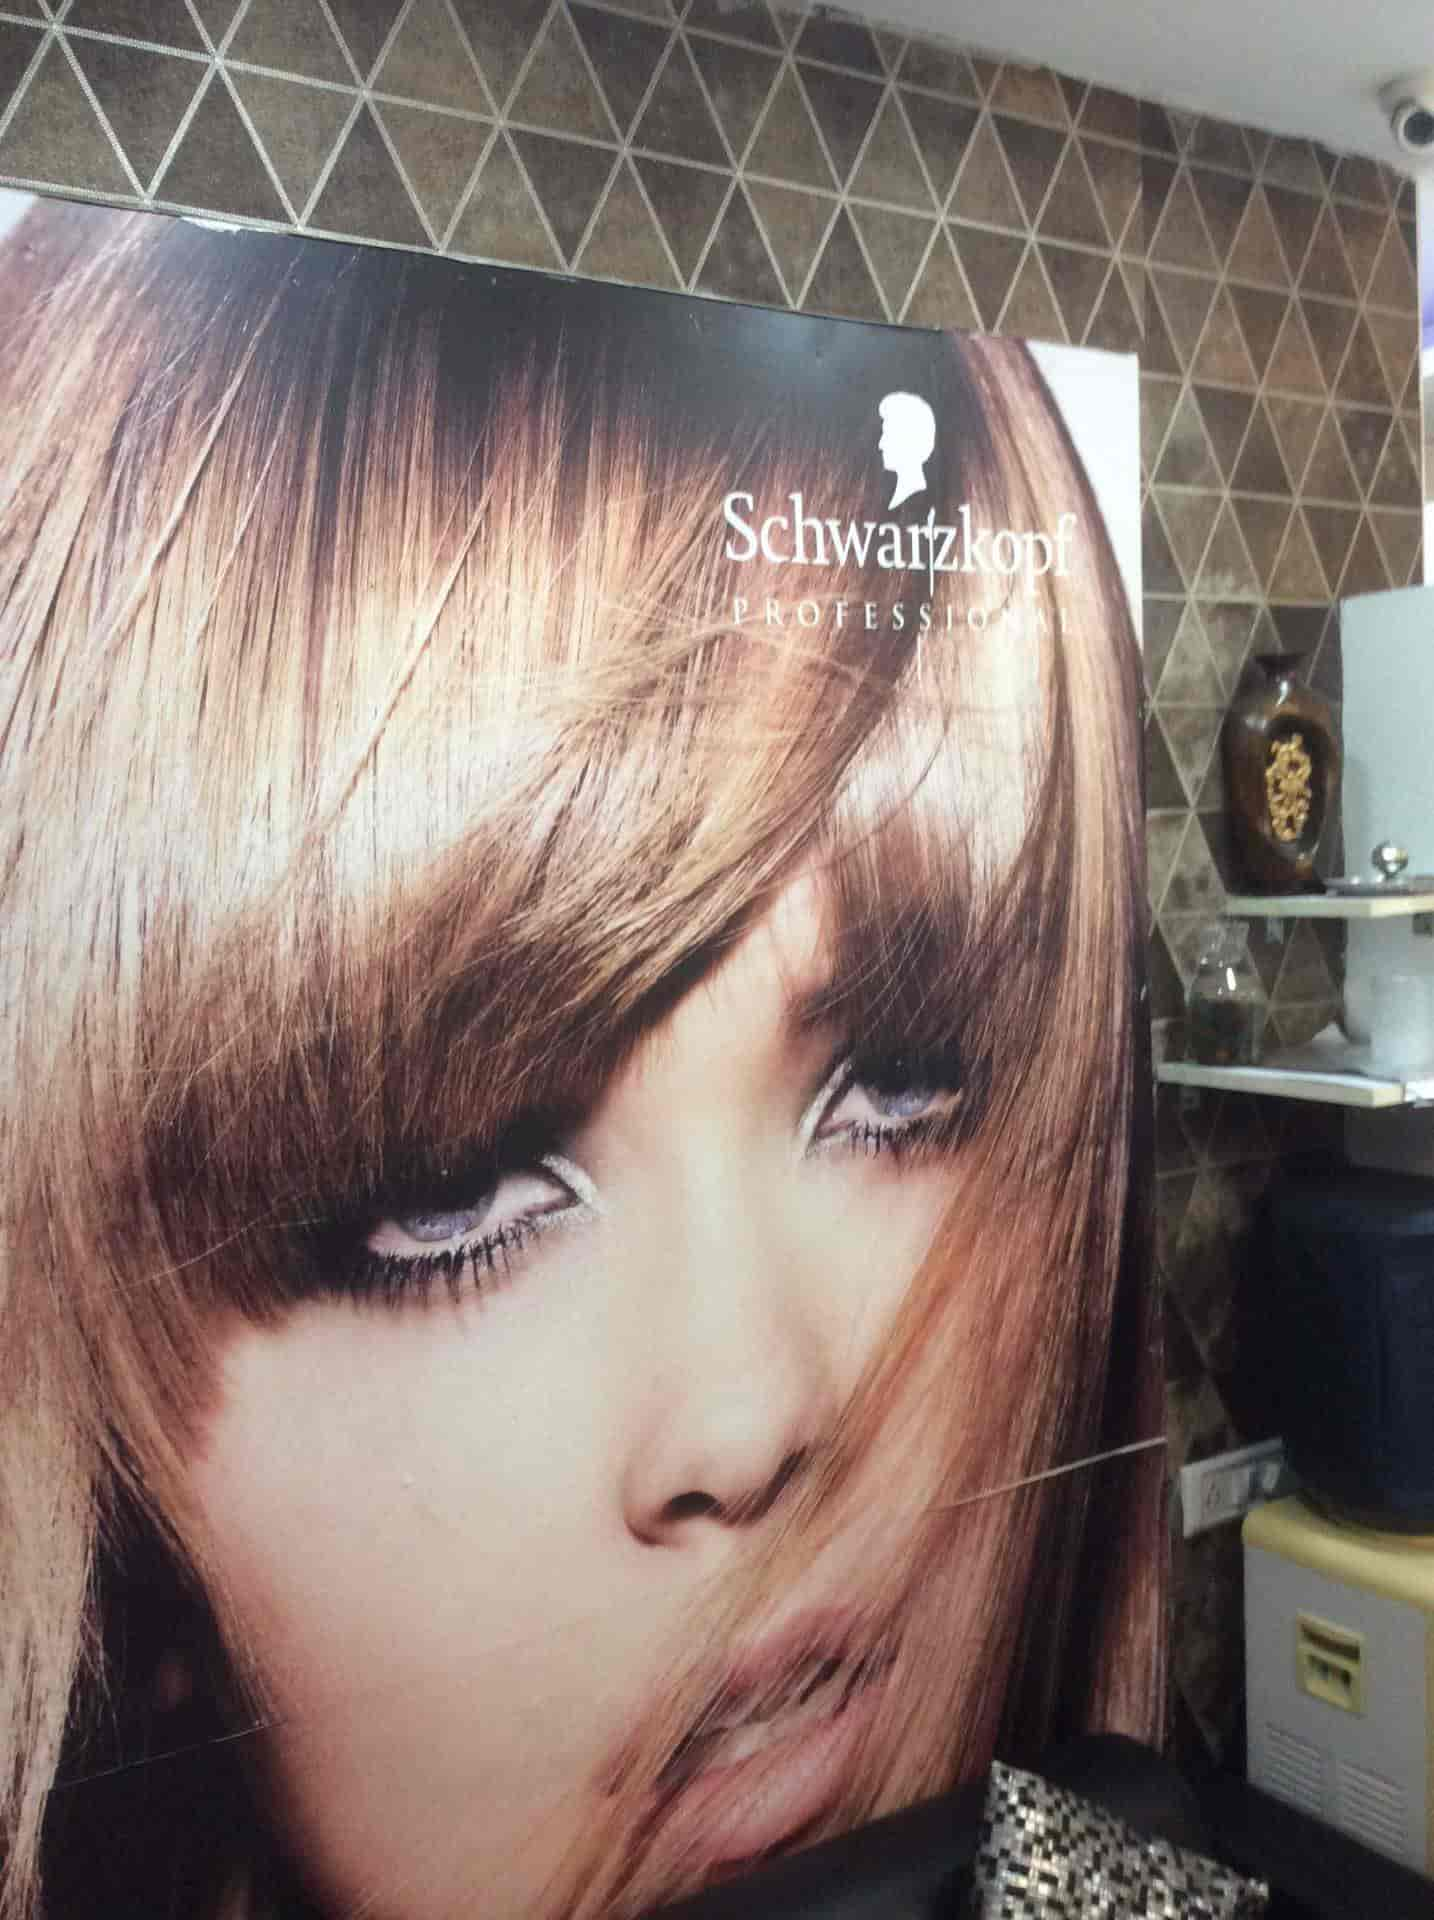 11d0bf78c31 Sunny's Cut & Style, Sector 59 Phase 5 - Salons in Chandigarh - Justdial